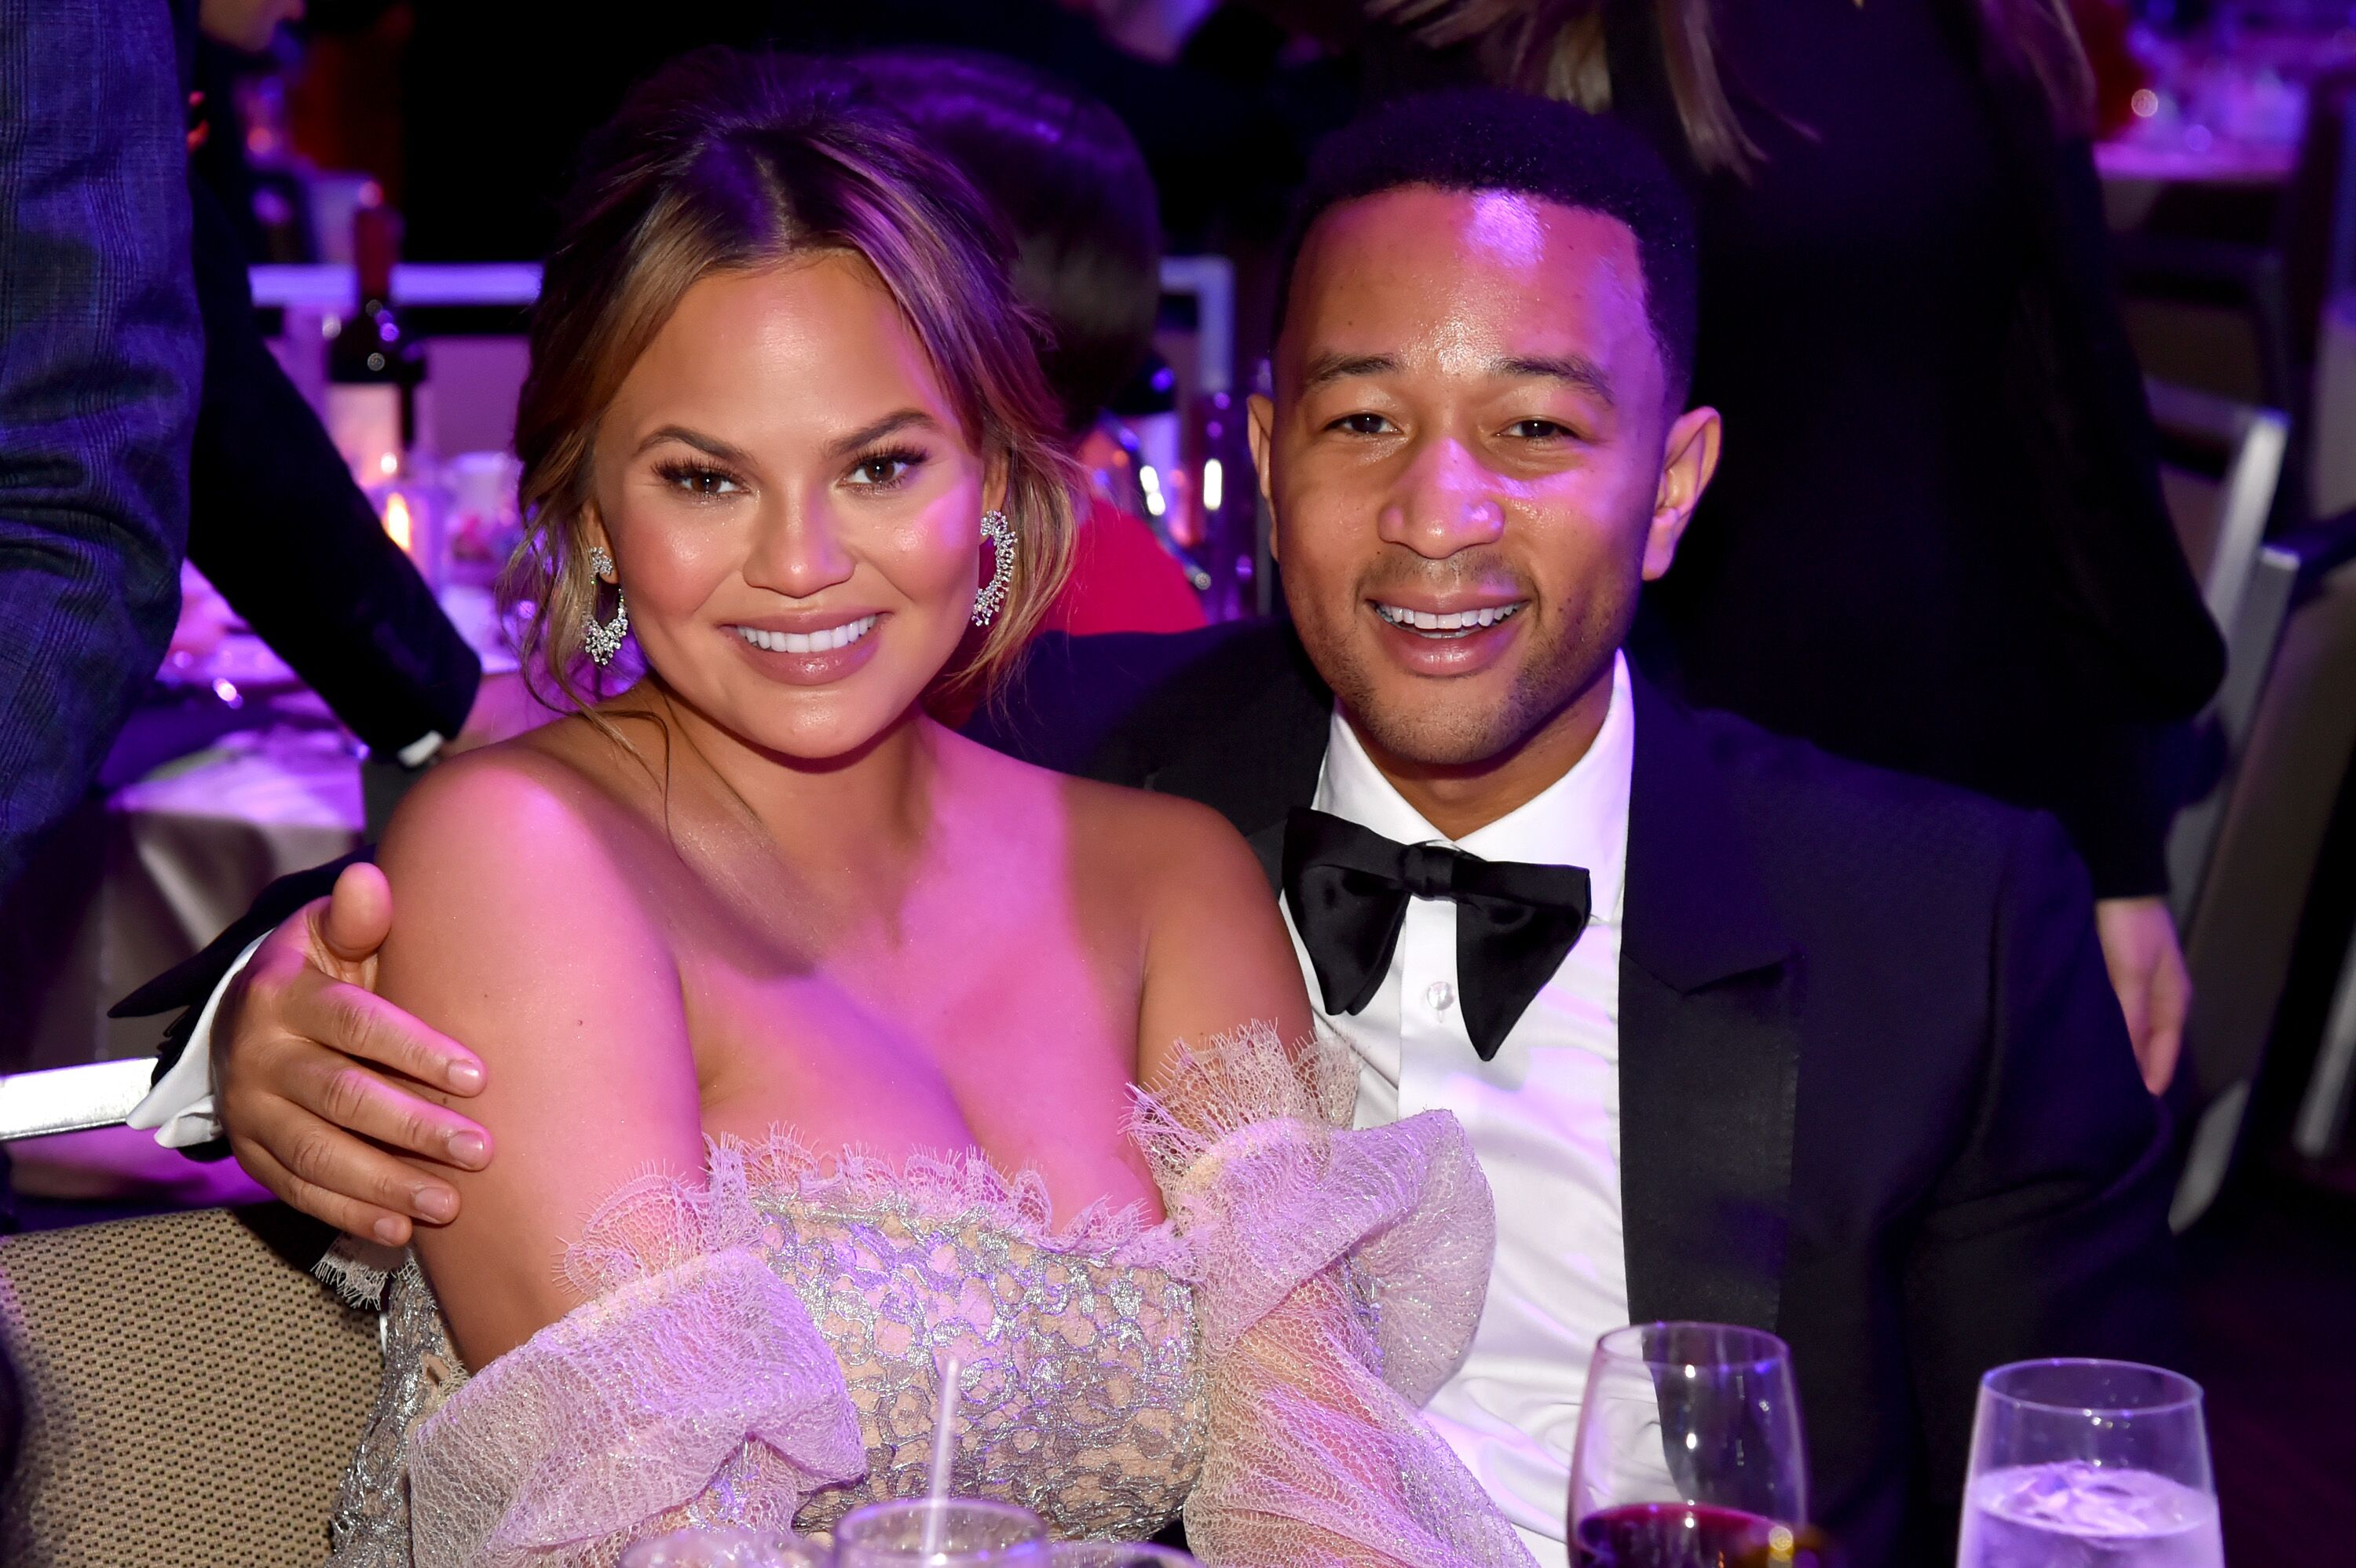 Singer John Legend and his wife Chrissy Teigen/ Source: Getty Images